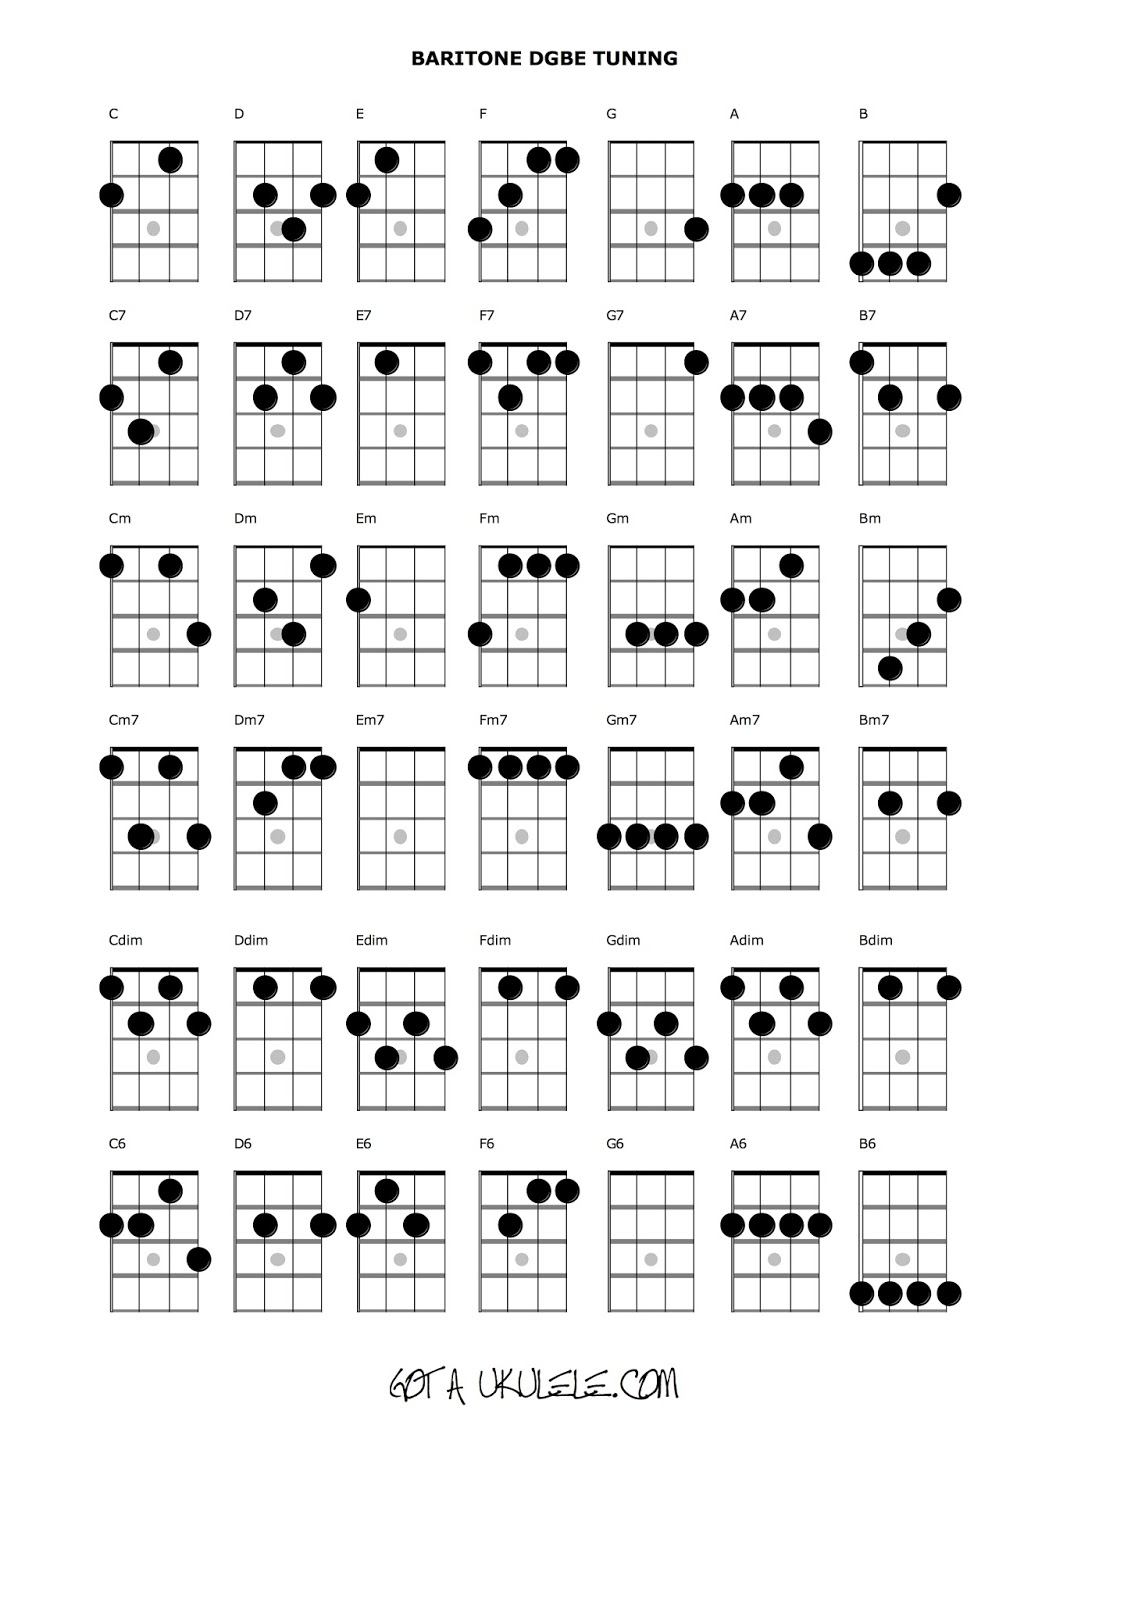 baritone uke chord chart. Black Bedroom Furniture Sets. Home Design Ideas